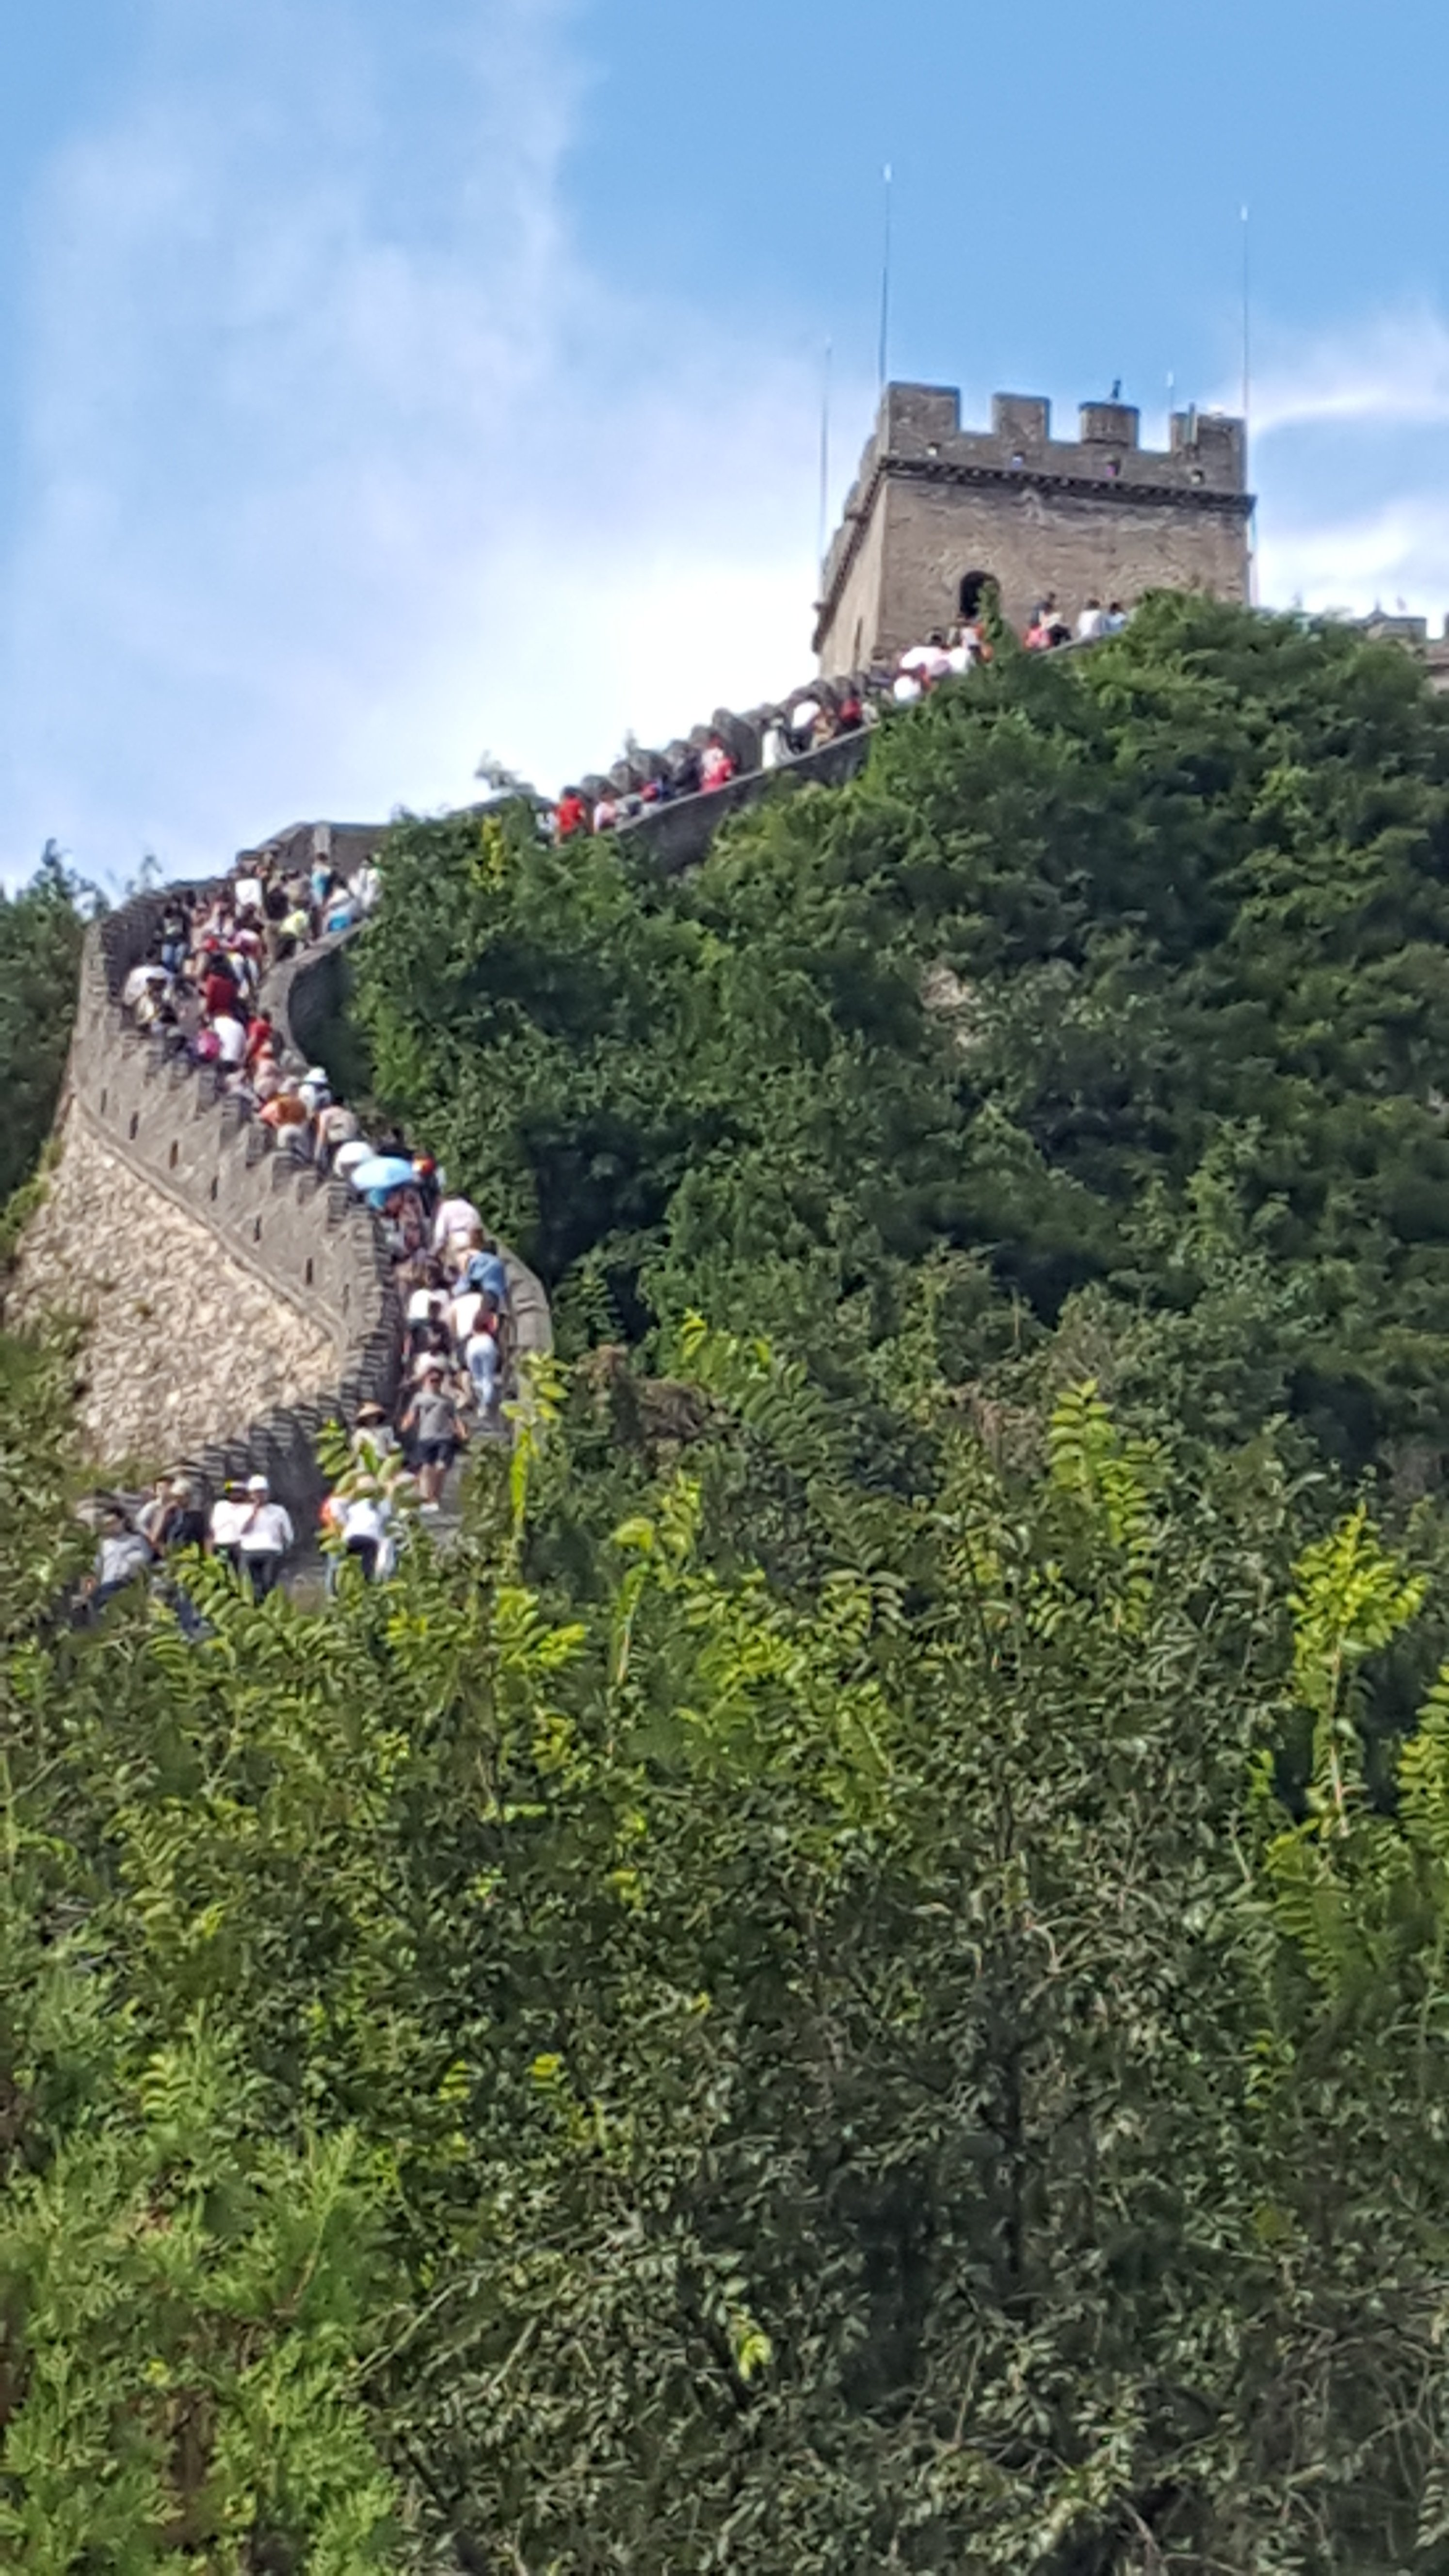 an overview of china and the great wall Great wall's history starts from the spring and autumn period, lasting 2,700 years, and it was built by over 20 states in several dynasties till qing dynasty.